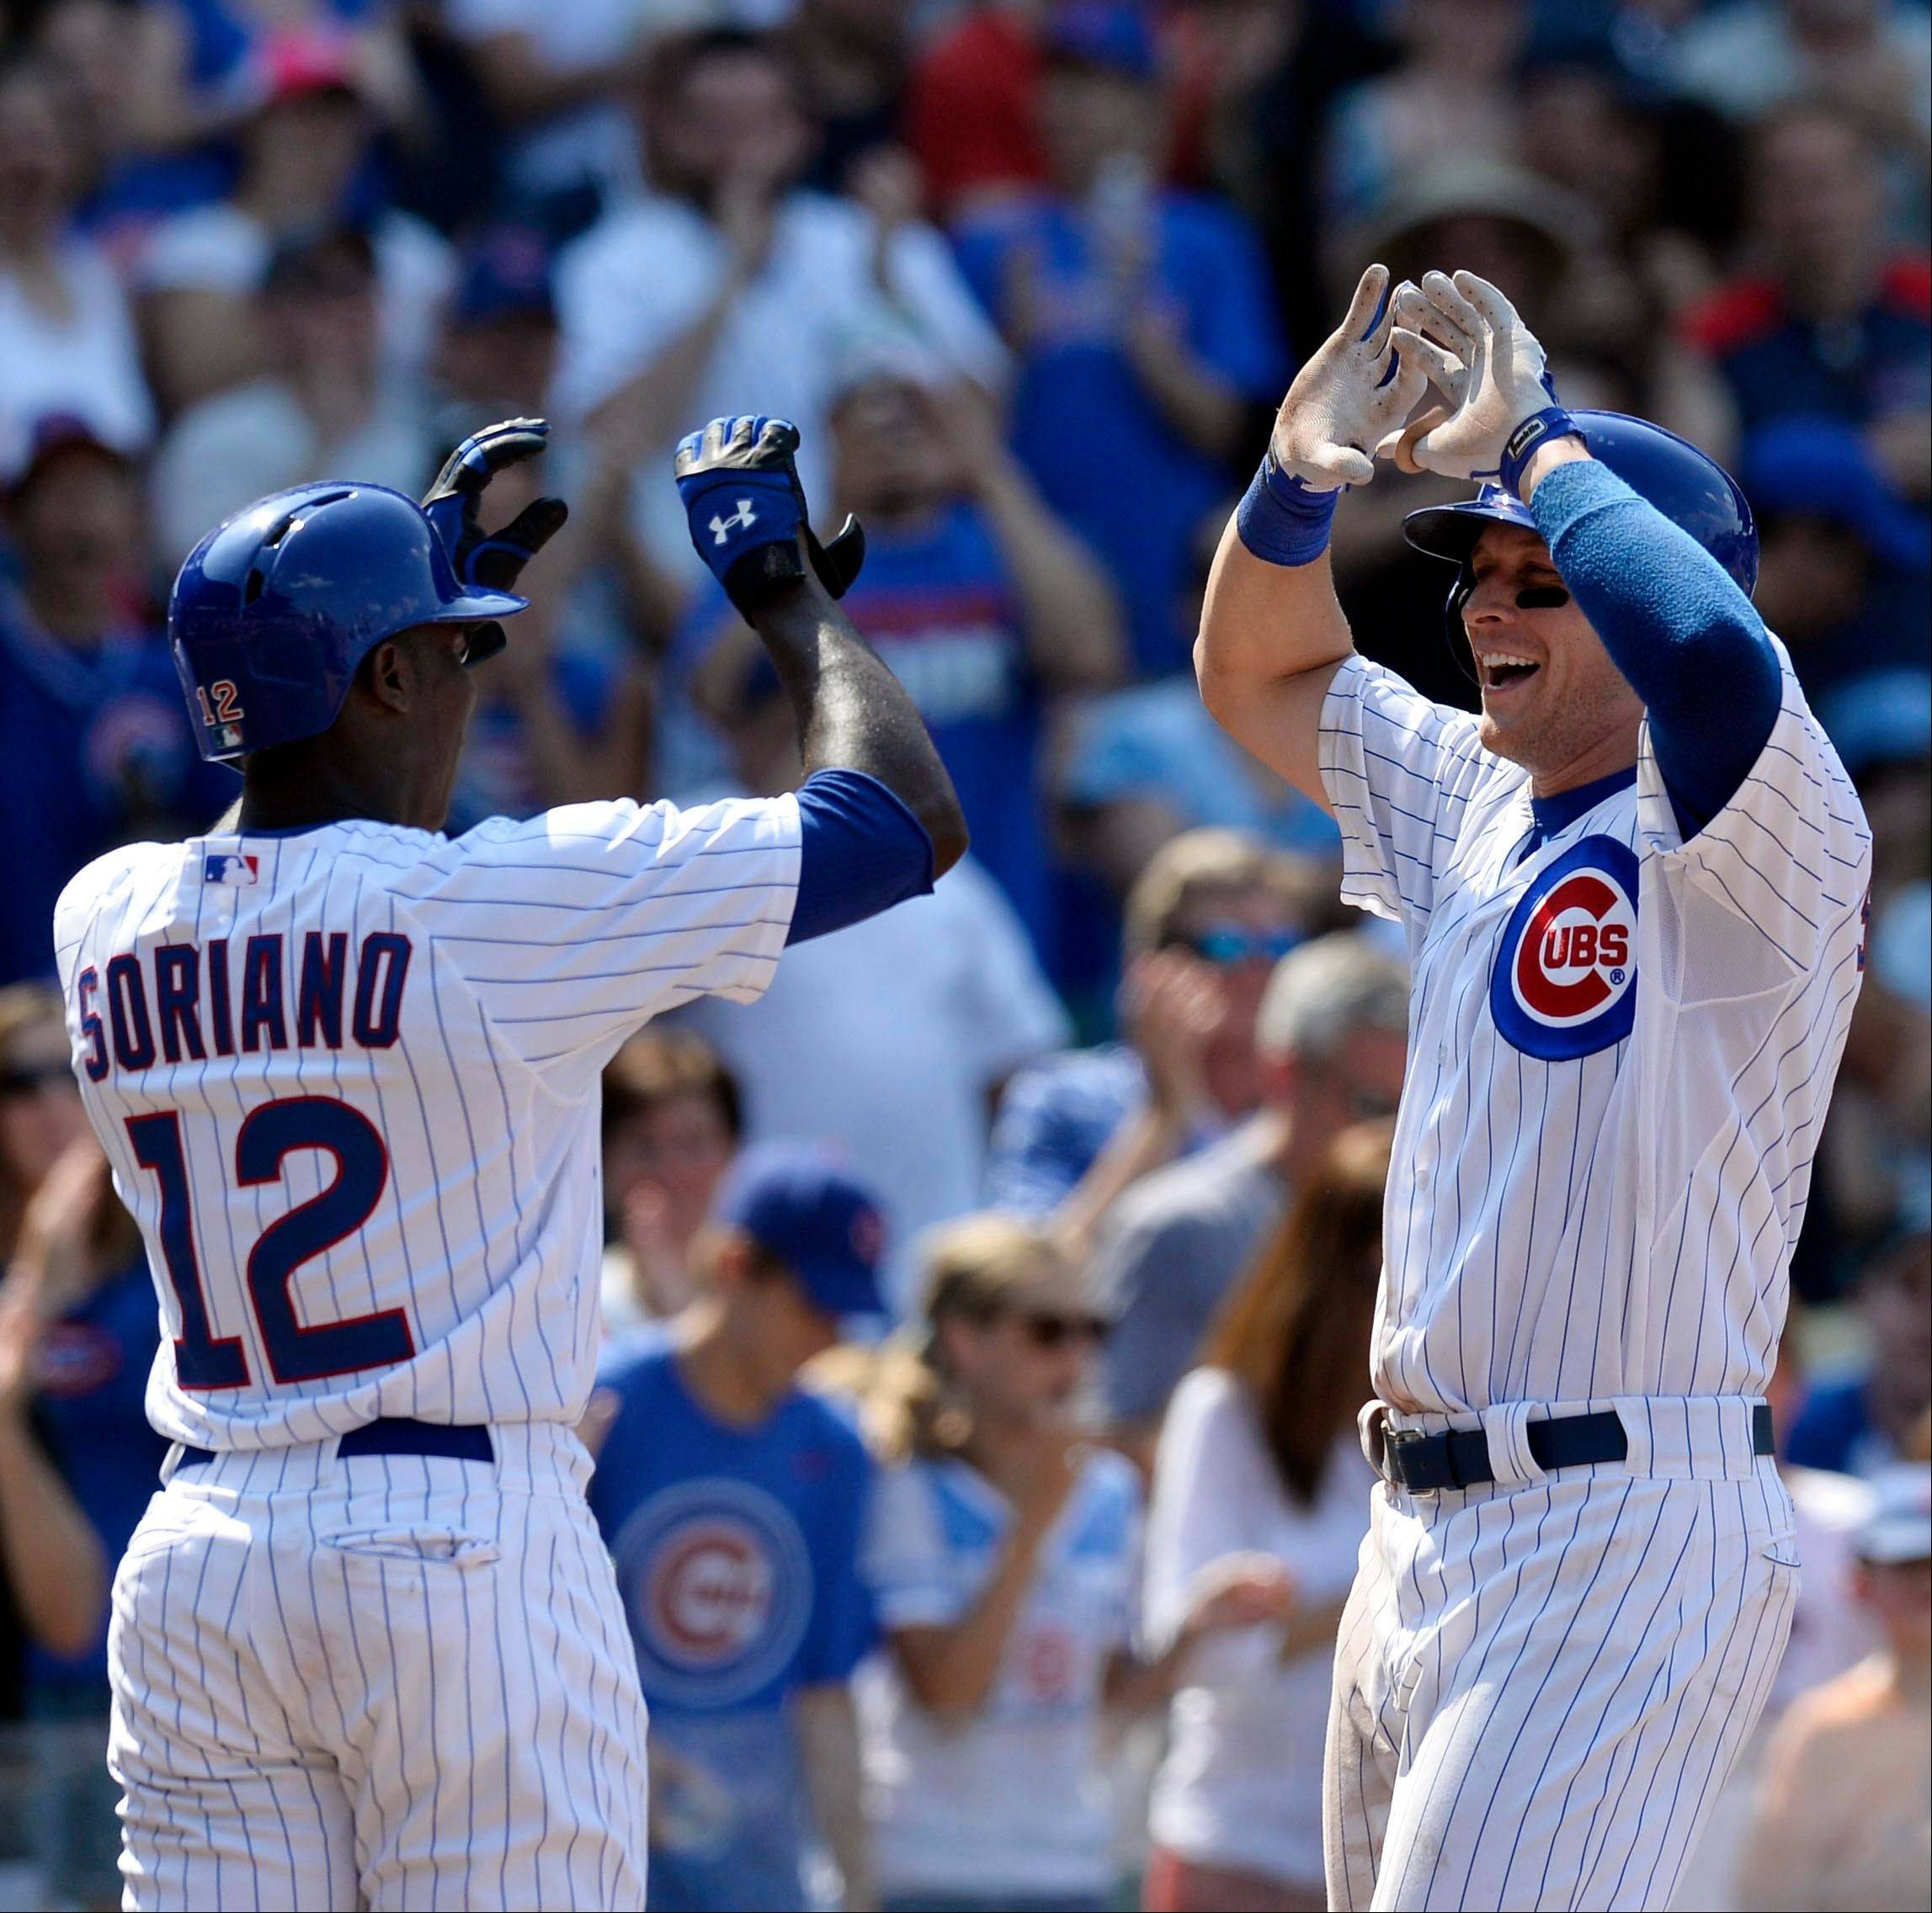 Alfonso Soriano greets Ryan Sweeney at home plate after Sweeney's 3-run homer in the seventh inning Sunday at Wrigley Field. Sweeney finished with a career-high 6 RBI in the Cubs' 14-6 victory over Houston.